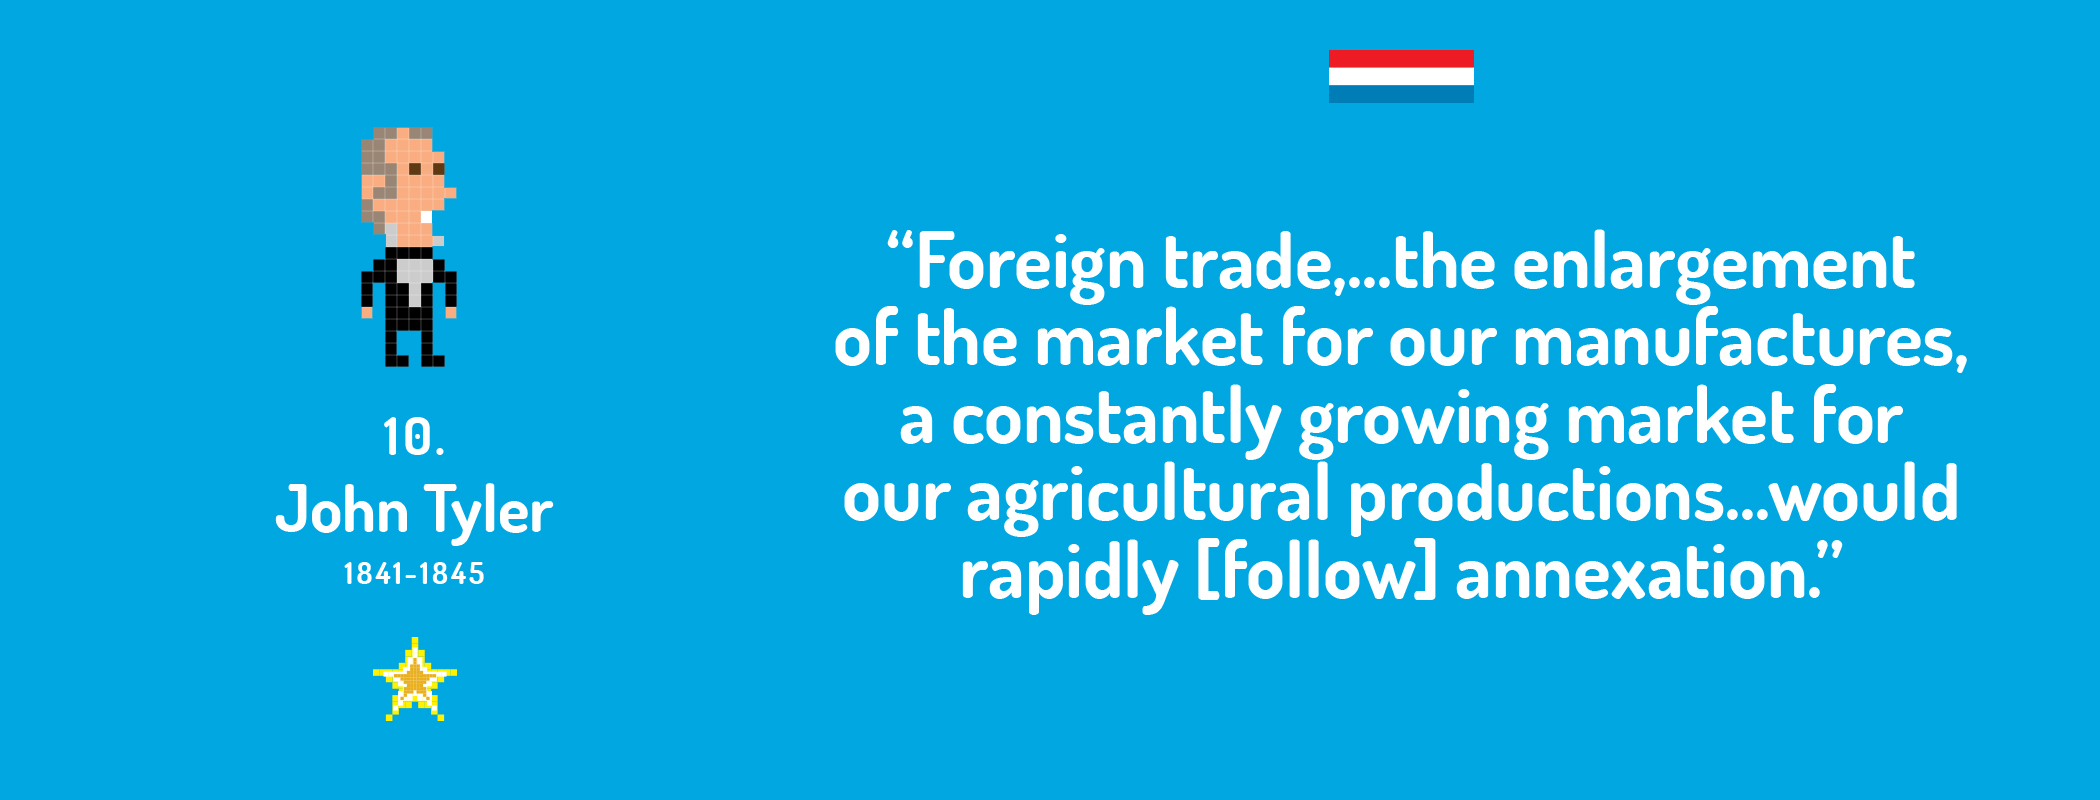 """Foreign trade, ... the enlargement of the market for our manufactures, a constantly growing market for our agricultural productions ... would rapidly [follow] annexation."""